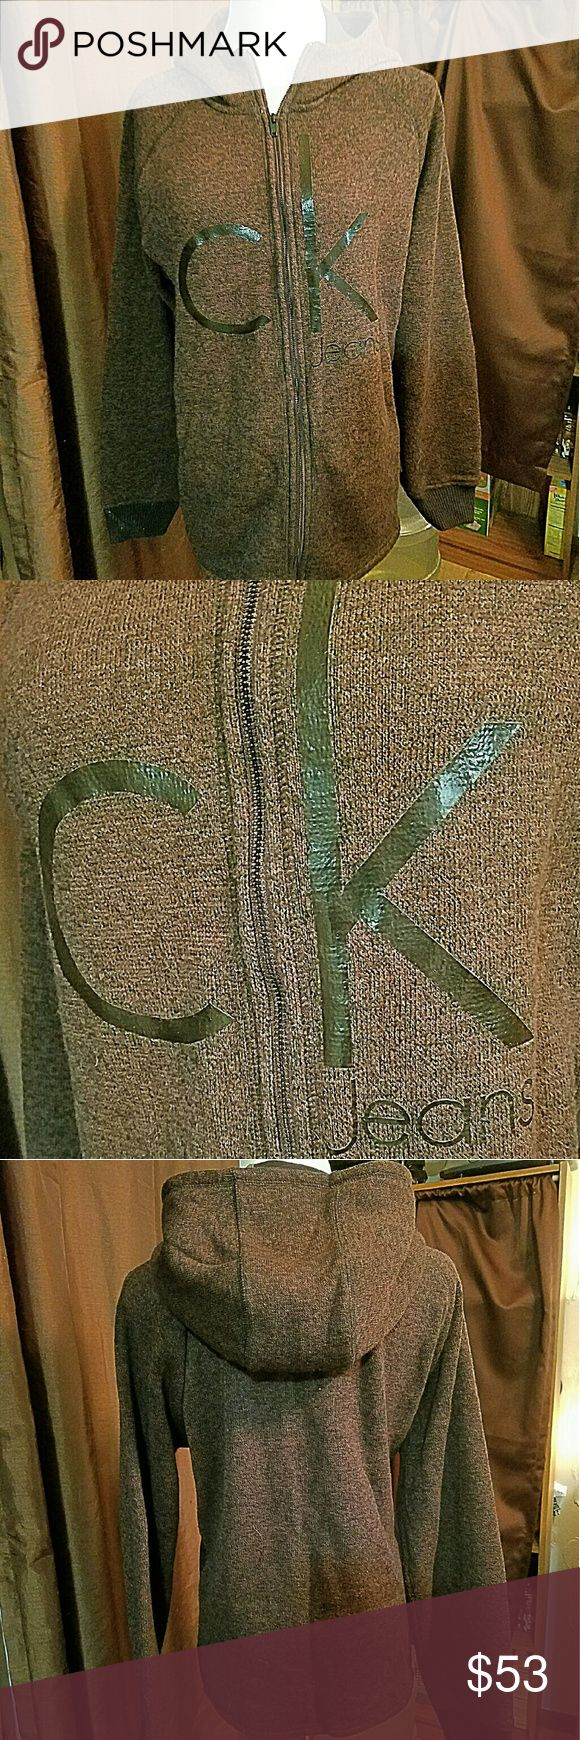 """CALVIN KLEIN ck Jeans Sz Large Textured Hoodie Brand: Calvin Klein Jeans  Item: *Mens ck Jeans Zip Up Hoodie *I have it Listed in Men's But Ladies Could Certainly Wear As Well - See Measurements *The Color is Very Hard to Describe - Kind of a Rusty Maroon Brown *Says ck Jeans on Front *Raglan Sleeves *Black Panels on Each Side *Pockets on Each Side for Hands *Very Good to Excellent Pre-Loved Condition  Armpit to Armpit (flat) - 23"""" Shoulder to Hem - 27""""  *no trades, offers via offer button…"""